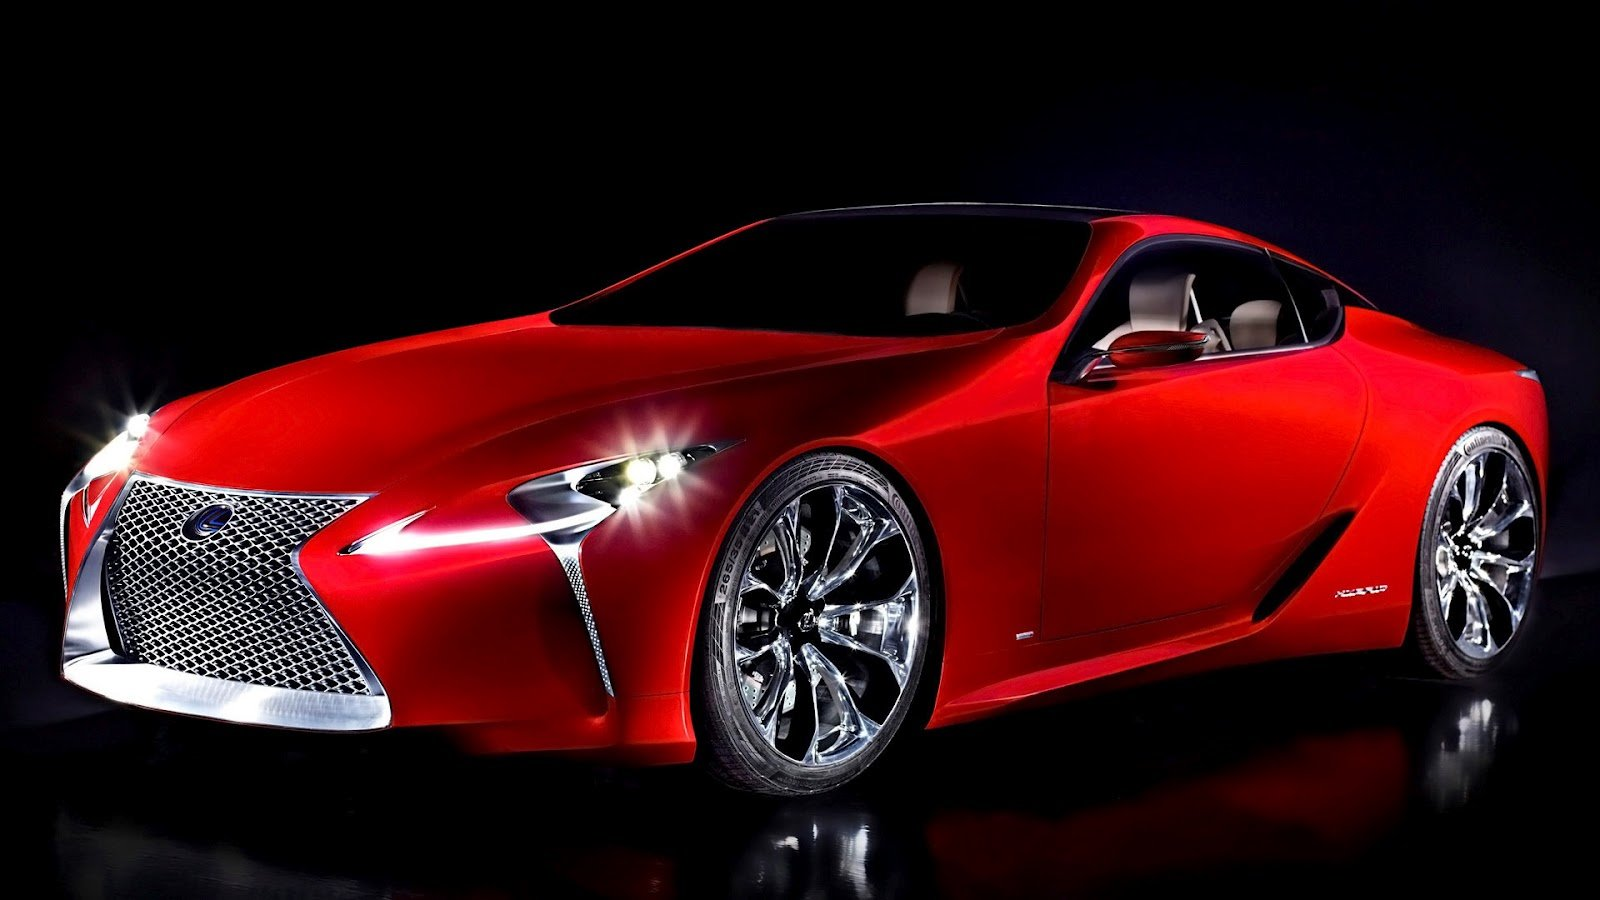 Latest Free Cars Hd Lexus Concept Car Hd Wallpapers Free Download